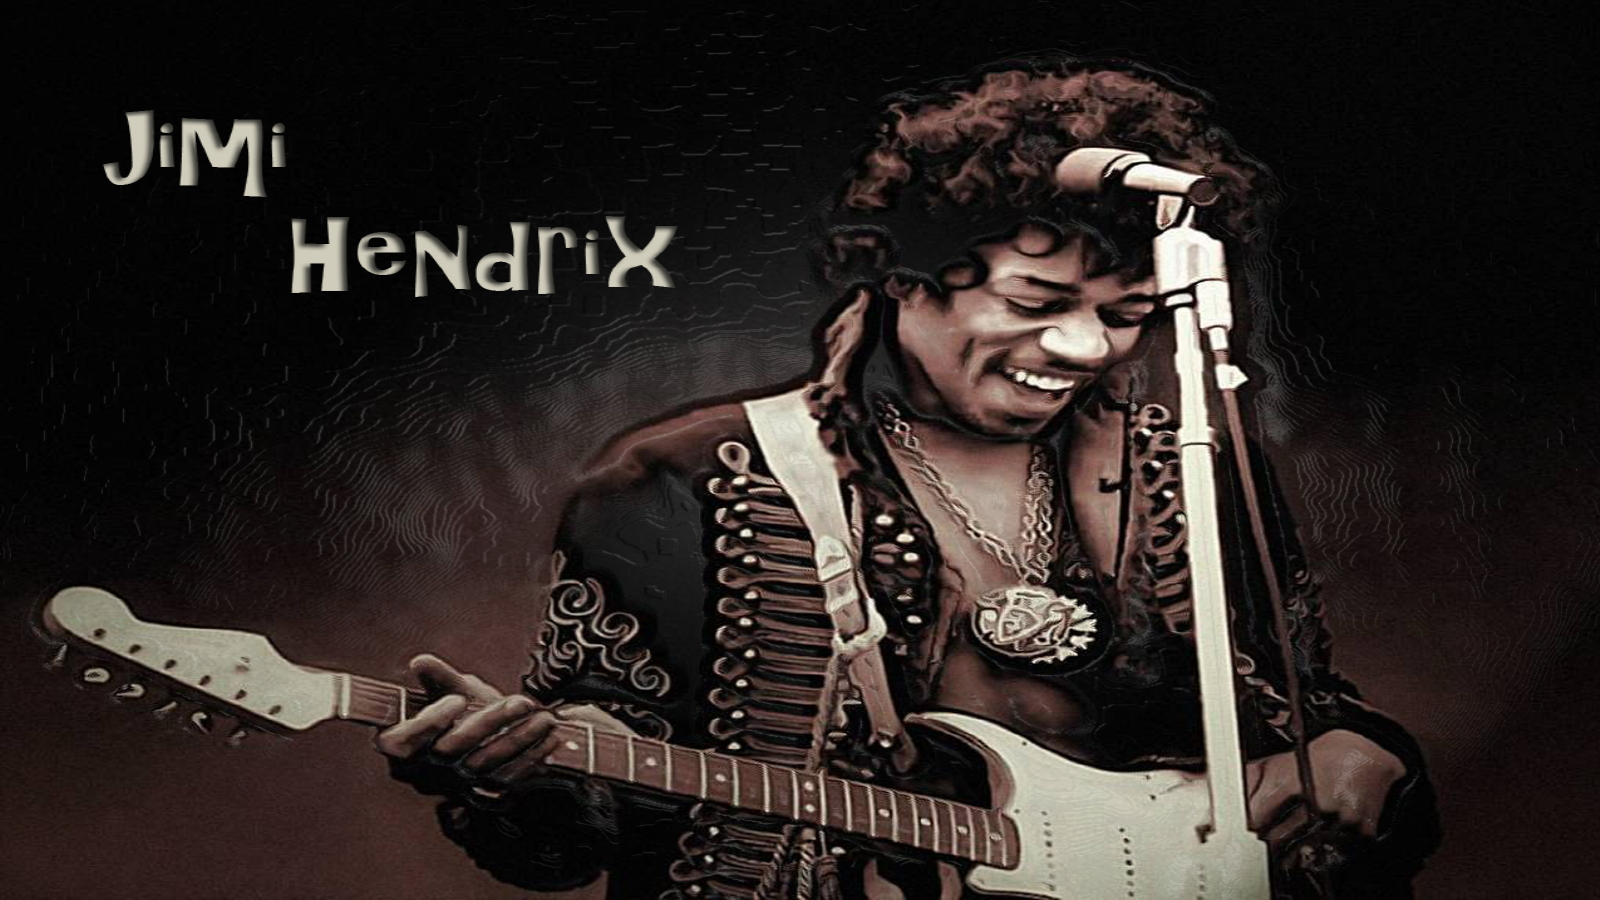 jimi hendrix wallpaper 10 - photo #41